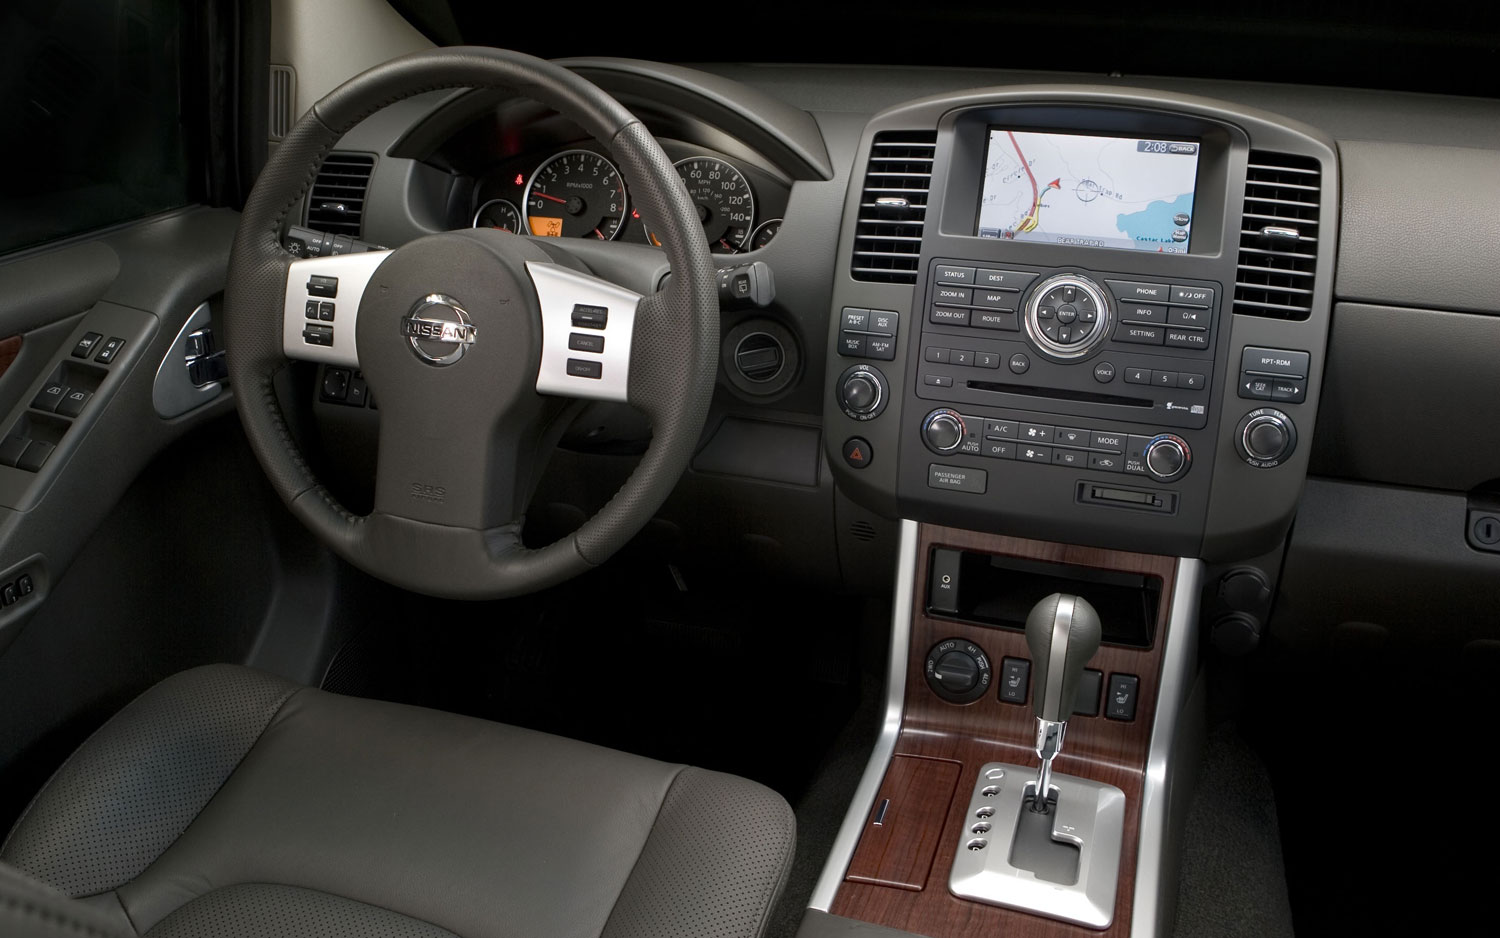 2013 nissan pathfinder interior revealed 2012 nissan pathfinder interior 2 vanachro Images